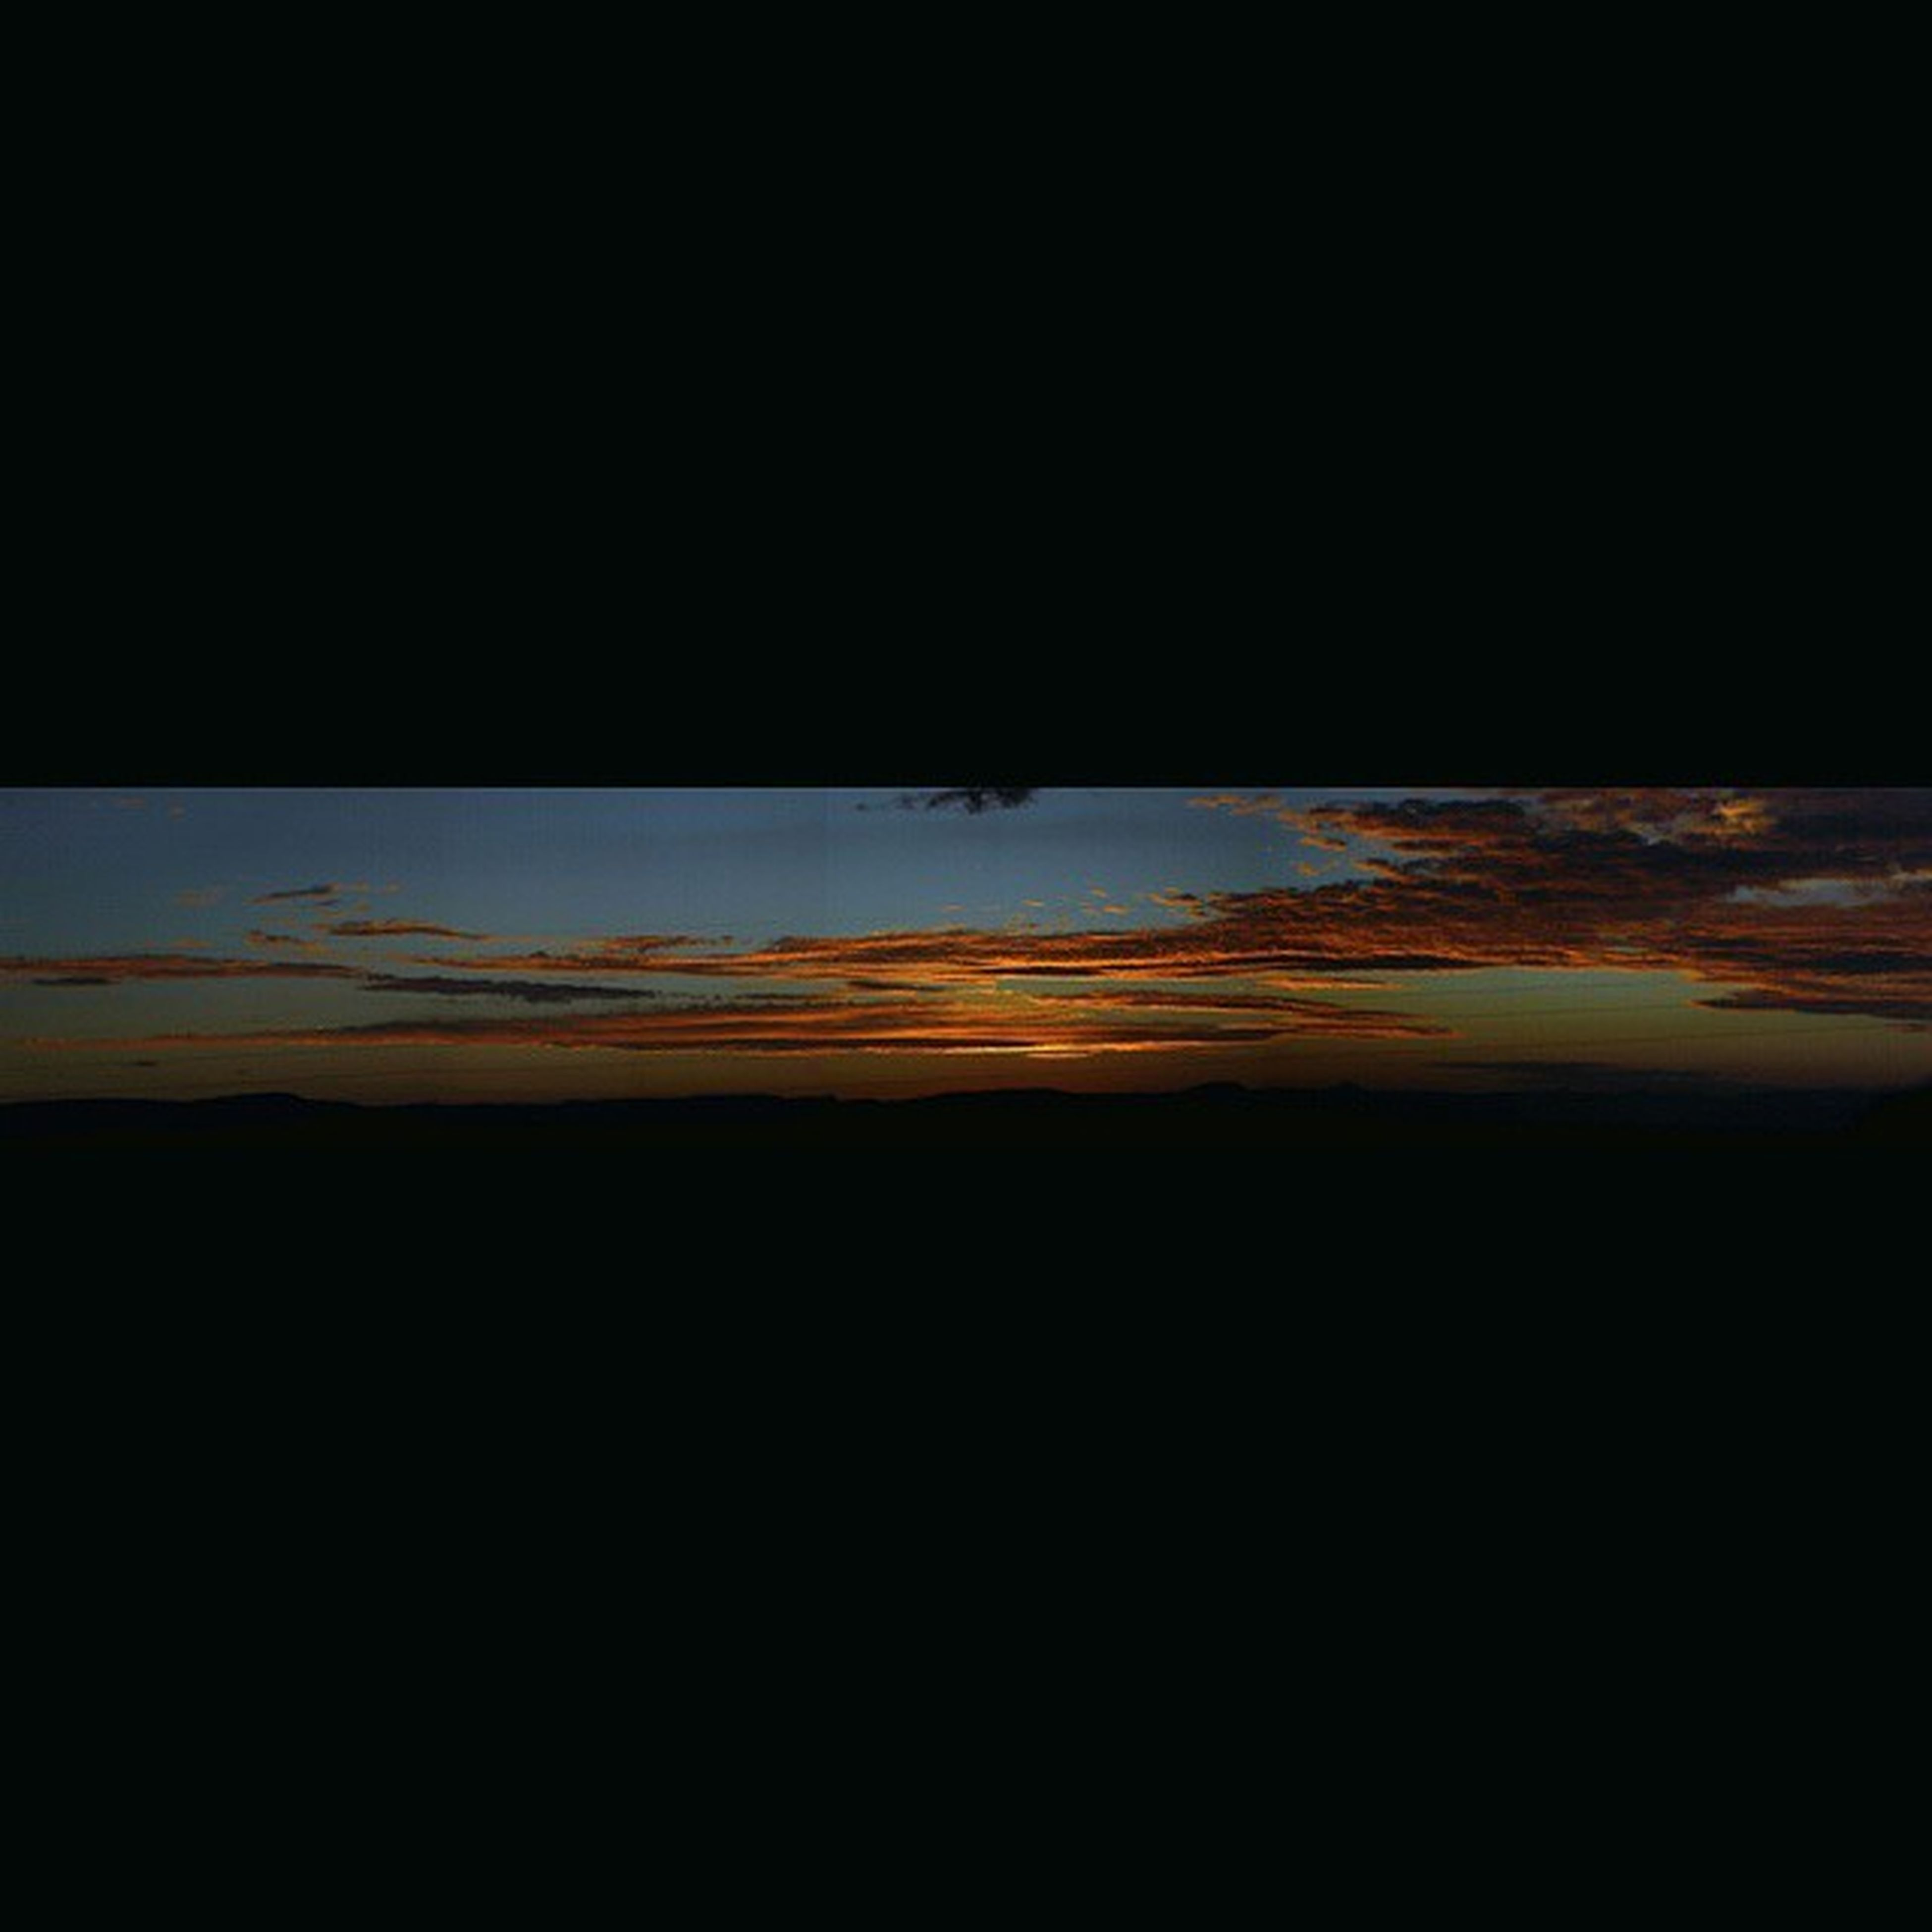 Sunsets Chasingsunsets Landscape Southafricansusnets ThisIsSouthAfrica Landscape_photogrpahy Panorama Stitched_panorama Sunrays Nature Naturegram Igers Sunrays Clouds Cloudporn Canon Canon100D Canonsa